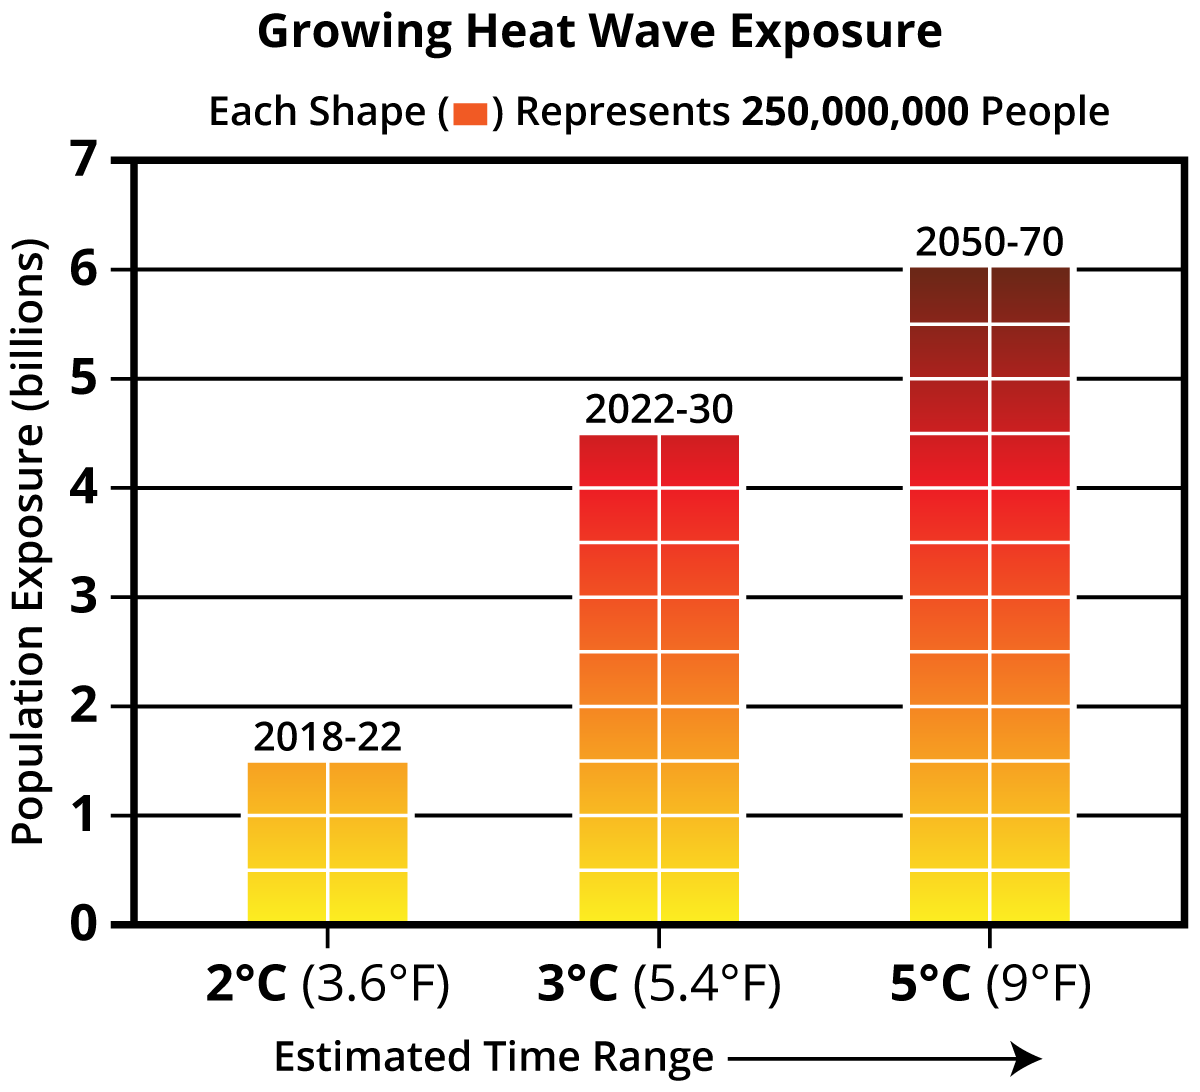 Growing_Heat_Wave_Exposure_(1).png